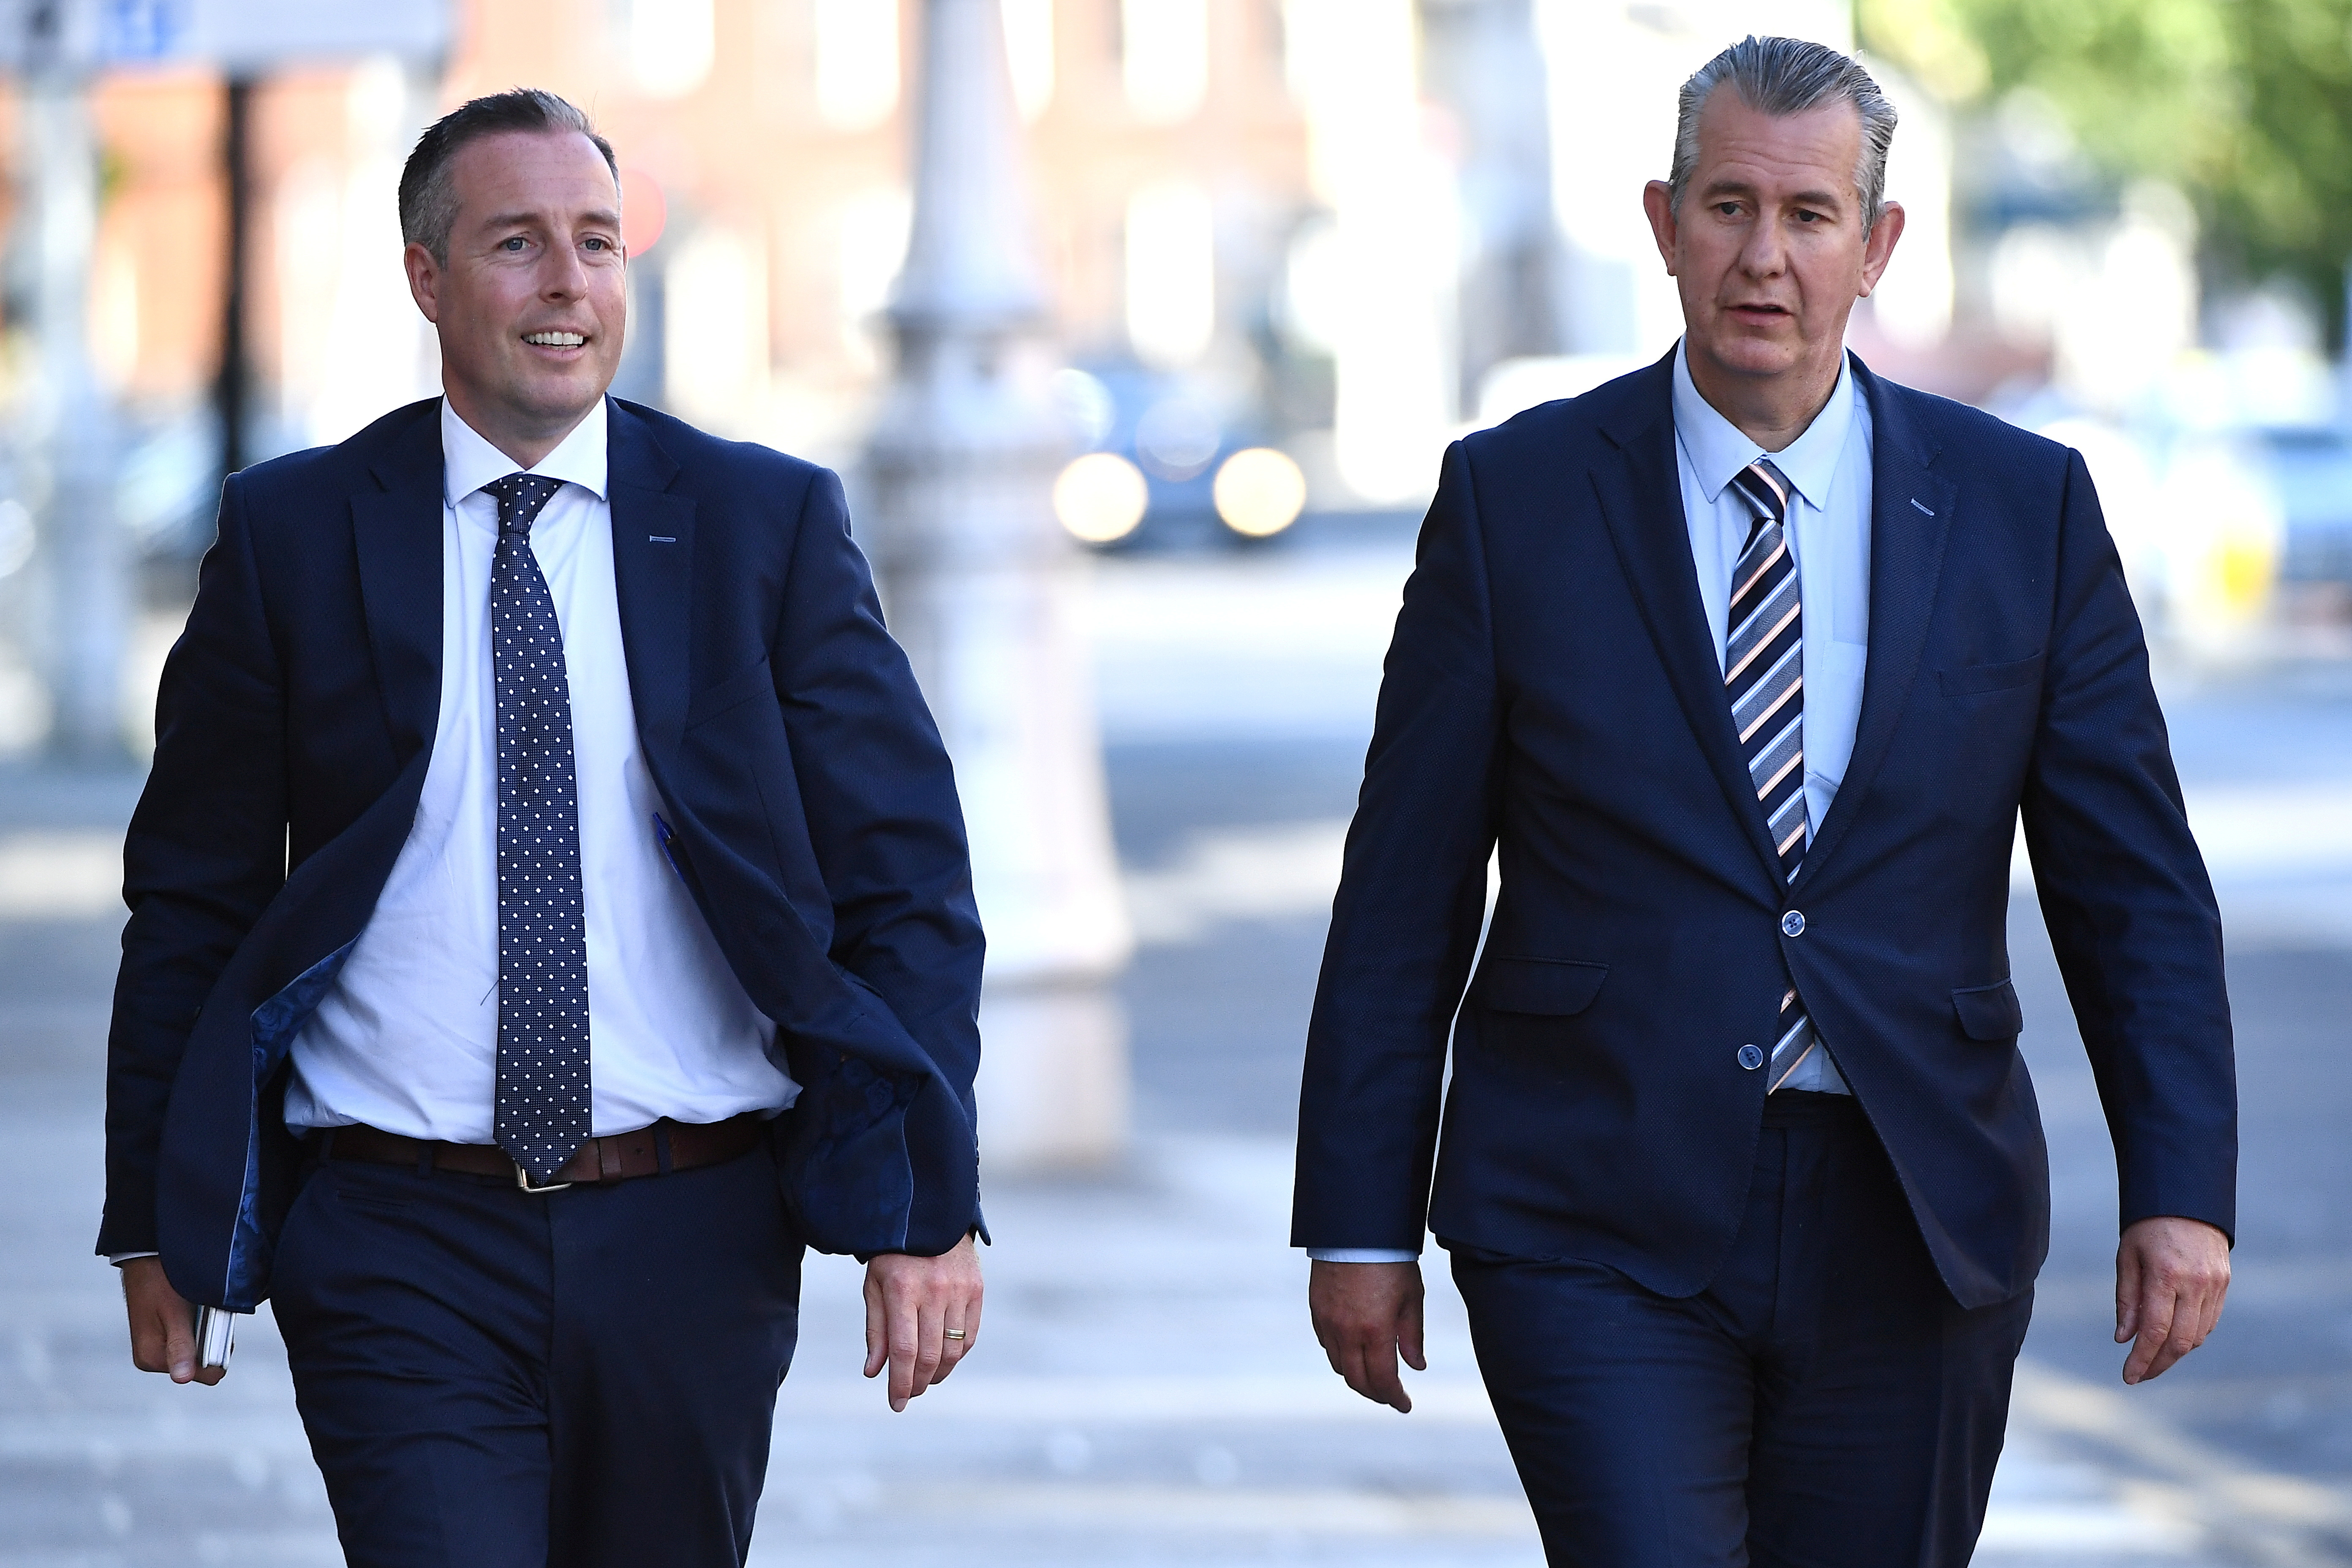 Leader of the Democratic Unionist Party (DUP) Edwin Poots and Paul Givan arrive at Government Buildings in Dublin, Ireland June 3, 2021. REUTERS/Clodagh Kilcoyne